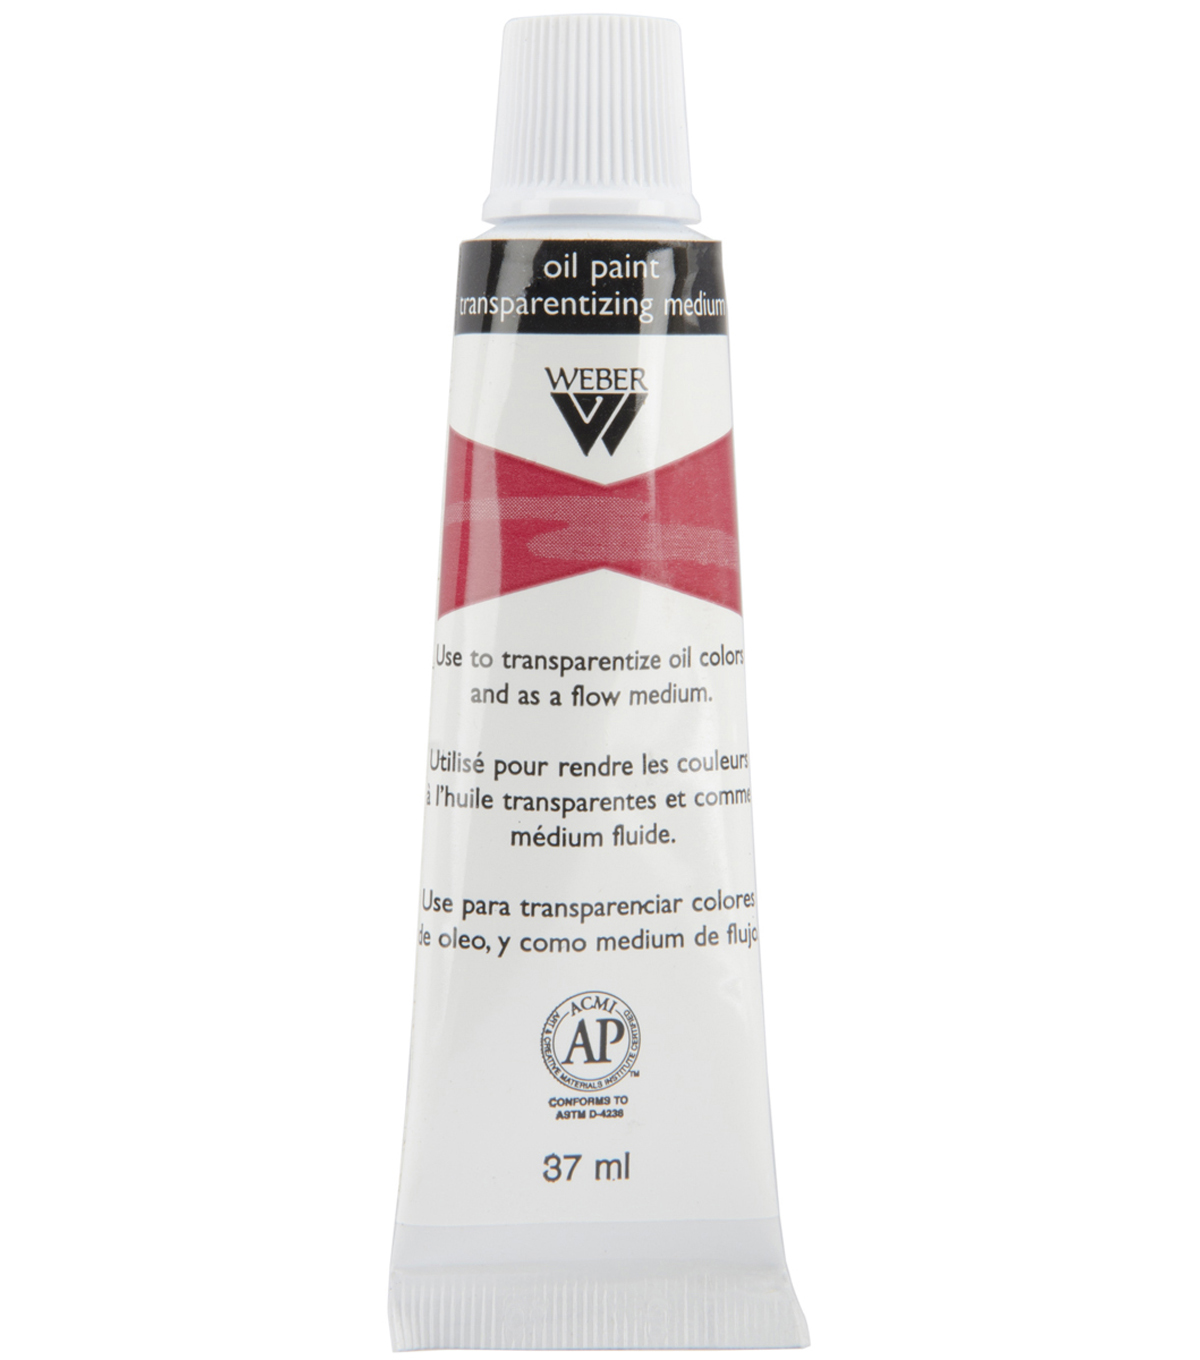 Wwber Oil Painting Transparentizing Medium-37ml